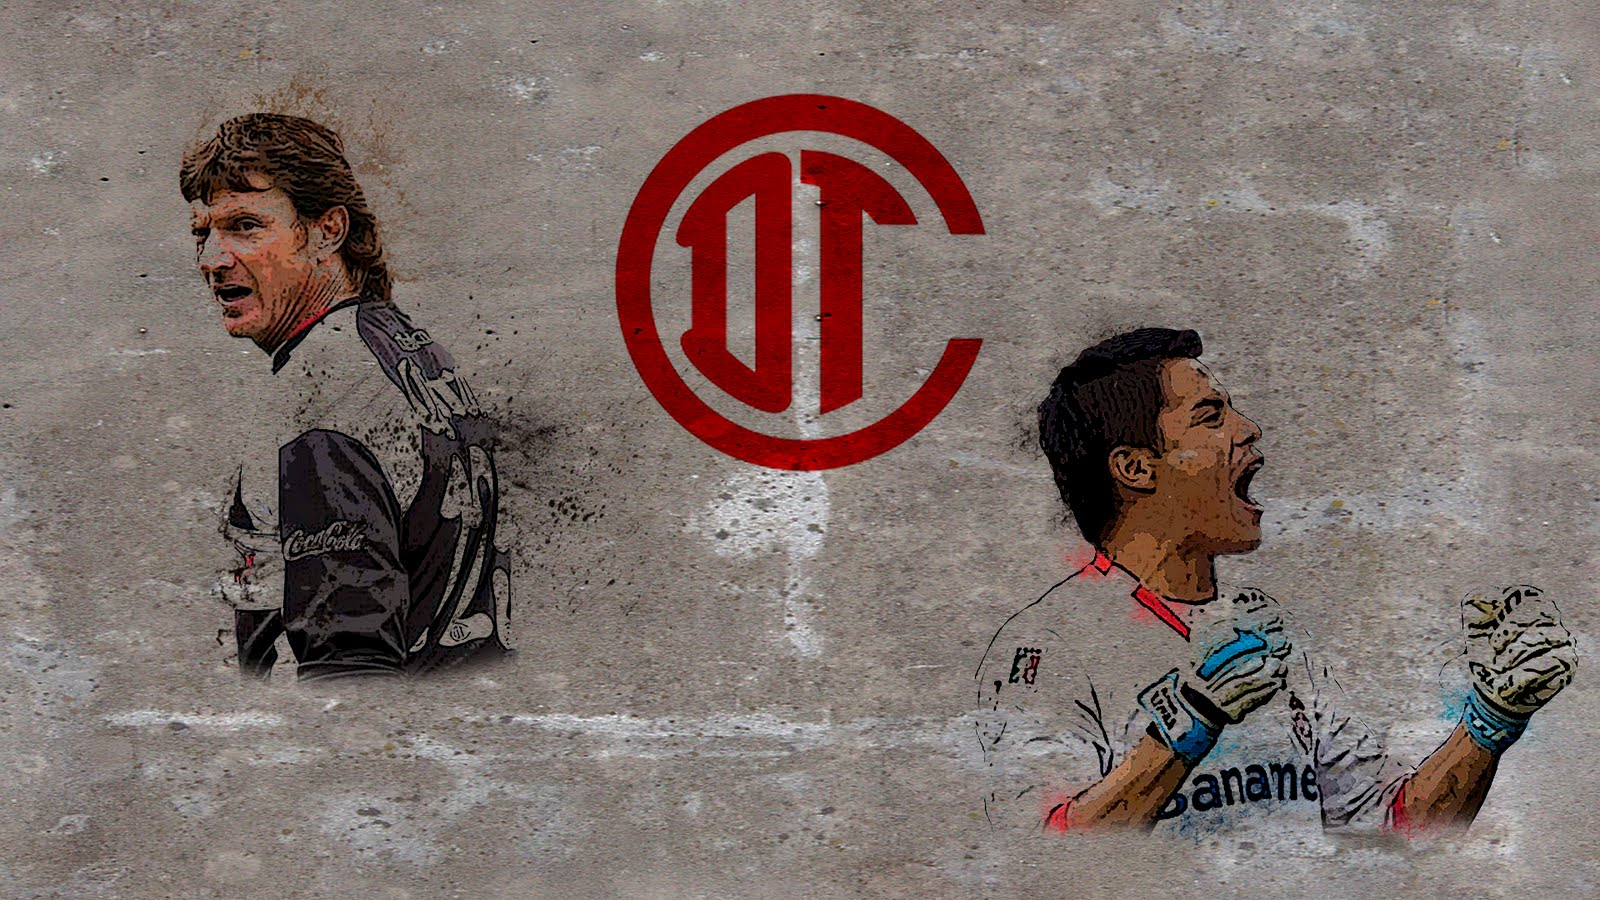 club toluca wallpaper - photo #42